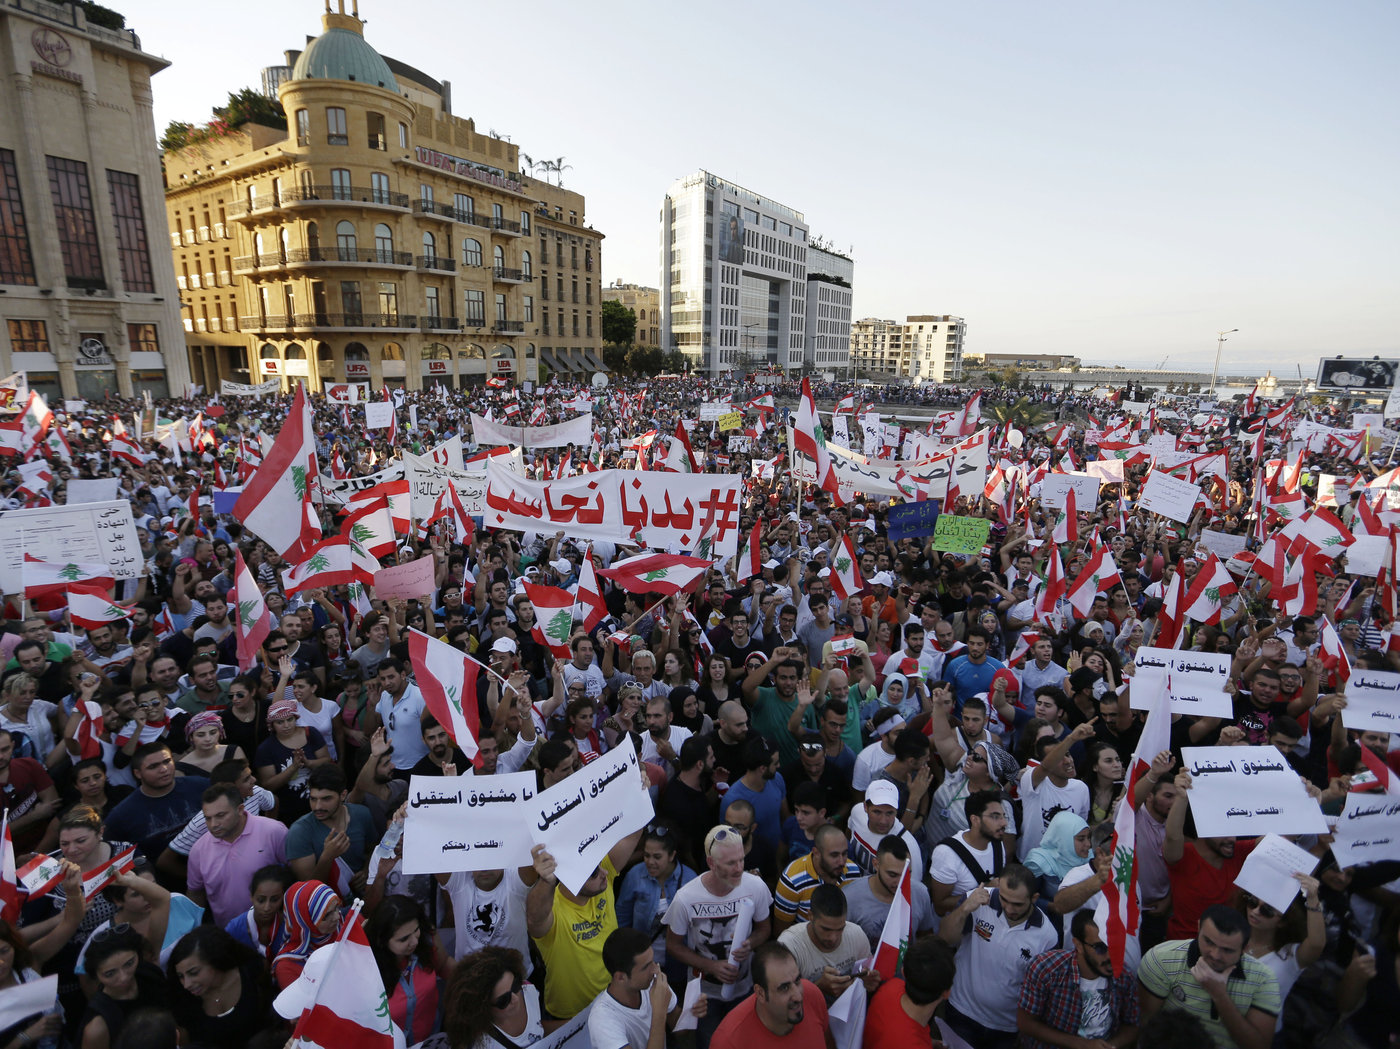 Demonstrators in downtown Beirut, Lebanon, protest the ongoing trash crisis and government corruption, August 29, 2015. PHOTO: Hassan Ammar, AP.